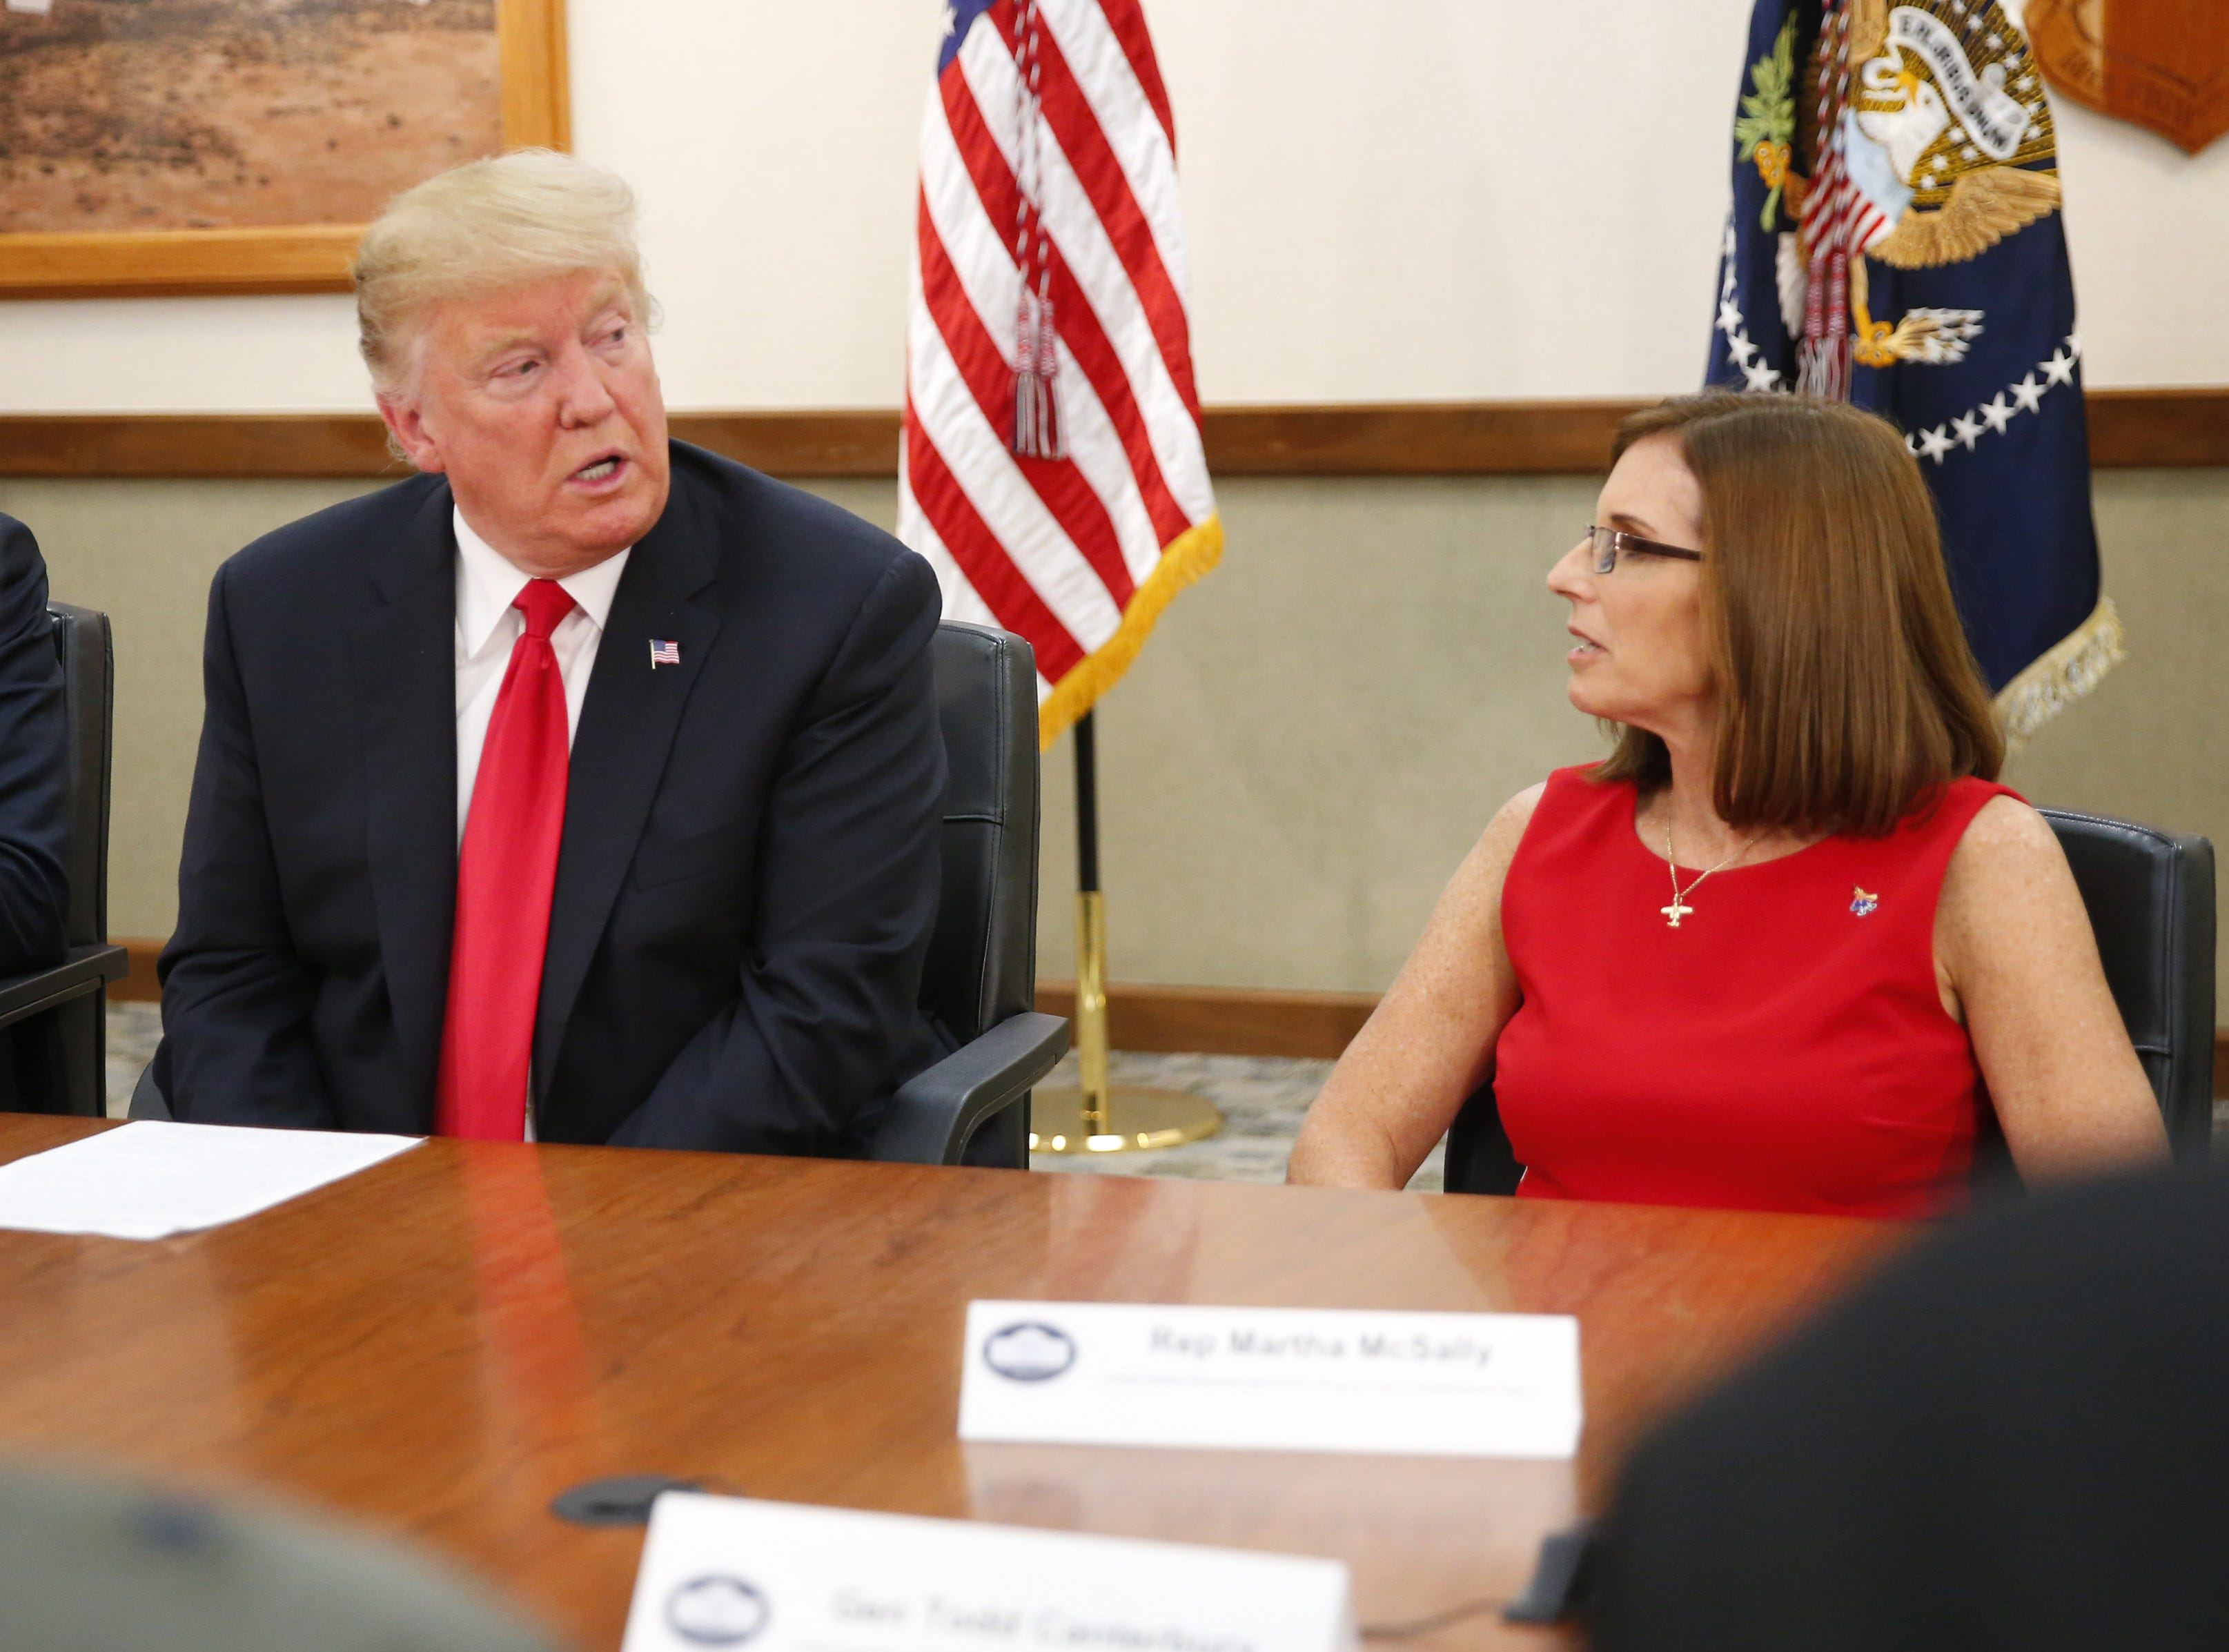 President Trump and Rep. Martha McSally talk during a round-table discussion at Luke Air Force Base in Glendale on Oct. 19, 2018.